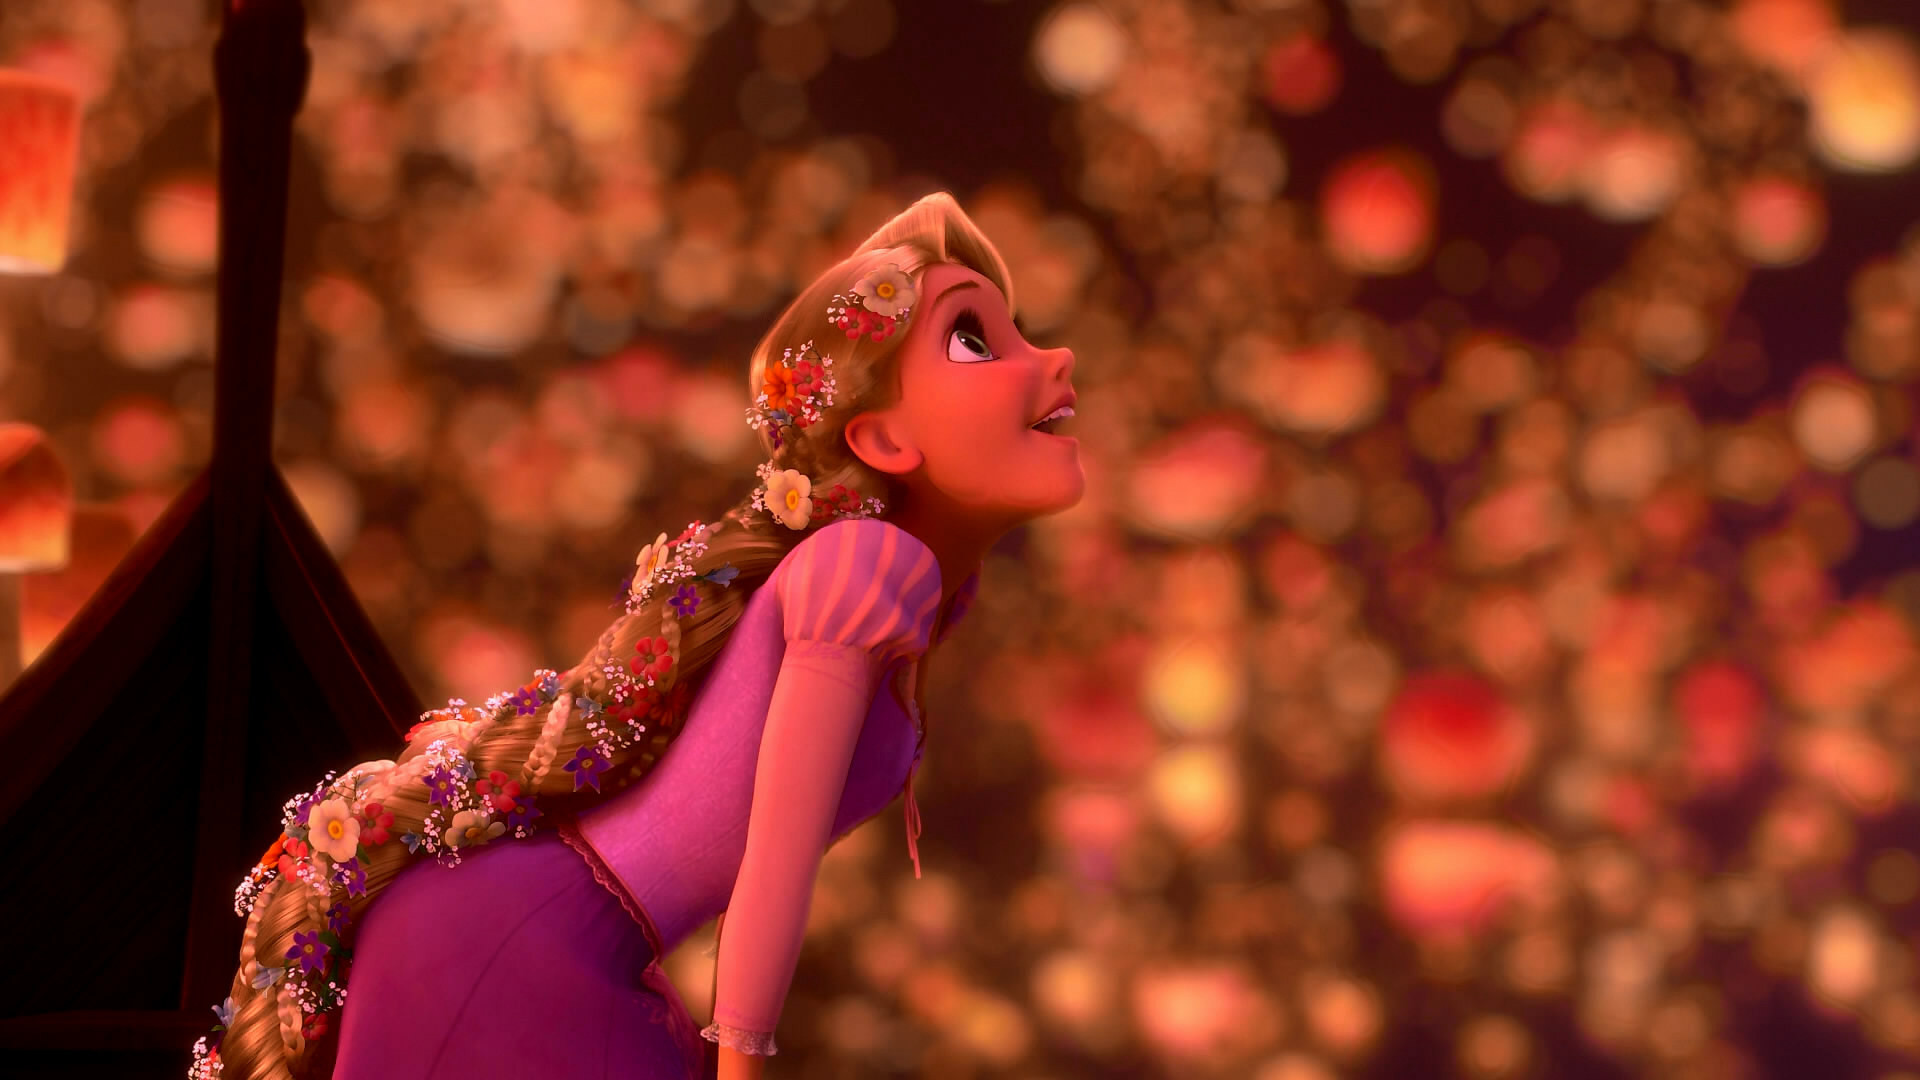 undefined Tangled Wallpaper (45 Wallpapers) | Adorable Wallpapers | Desktop  | Pinterest | Tangled wallpaper, Tangled and Wallpaper